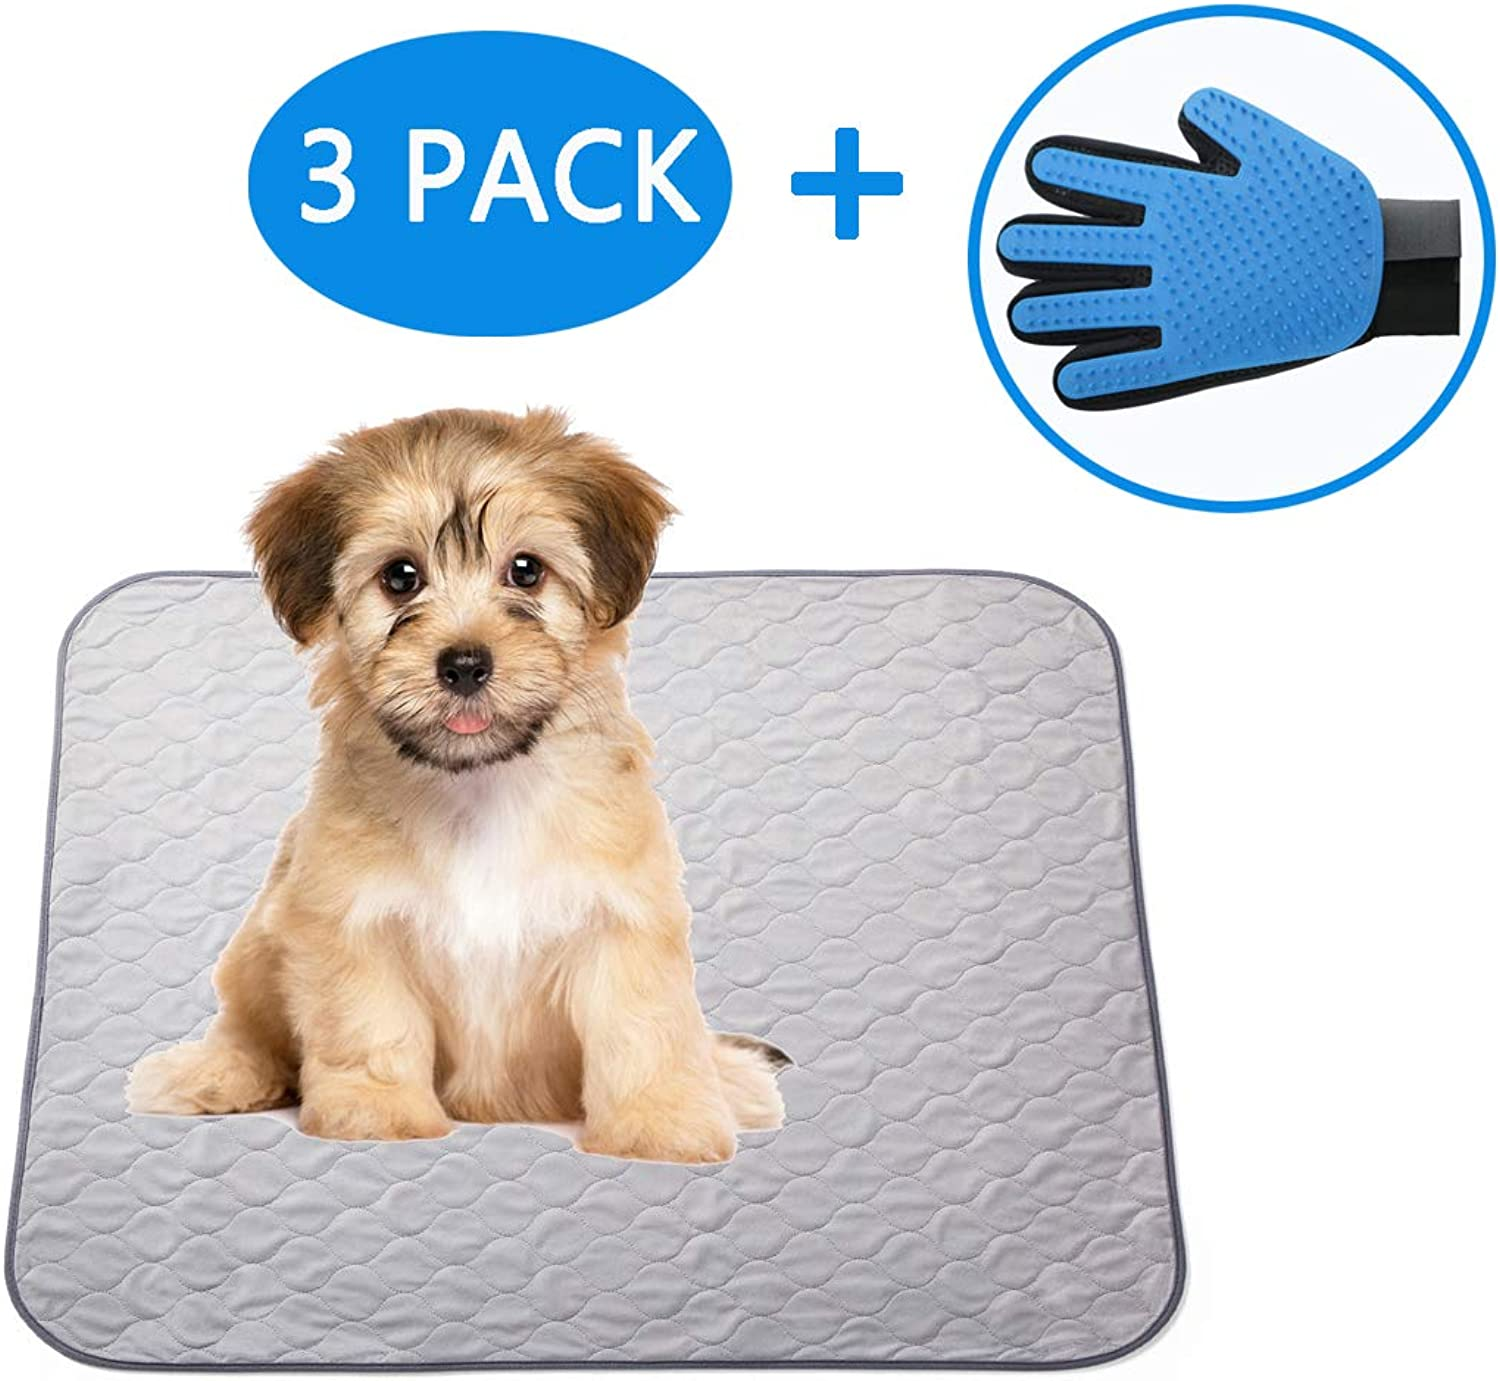 Paw Jamboree Washable Pee Pads for Dogs 2 Large & 1 Travel Training Pads for Dogs Absorbent Waterproof Pee Pad Reusable Puppy Training Pads Dog Whelping Mats